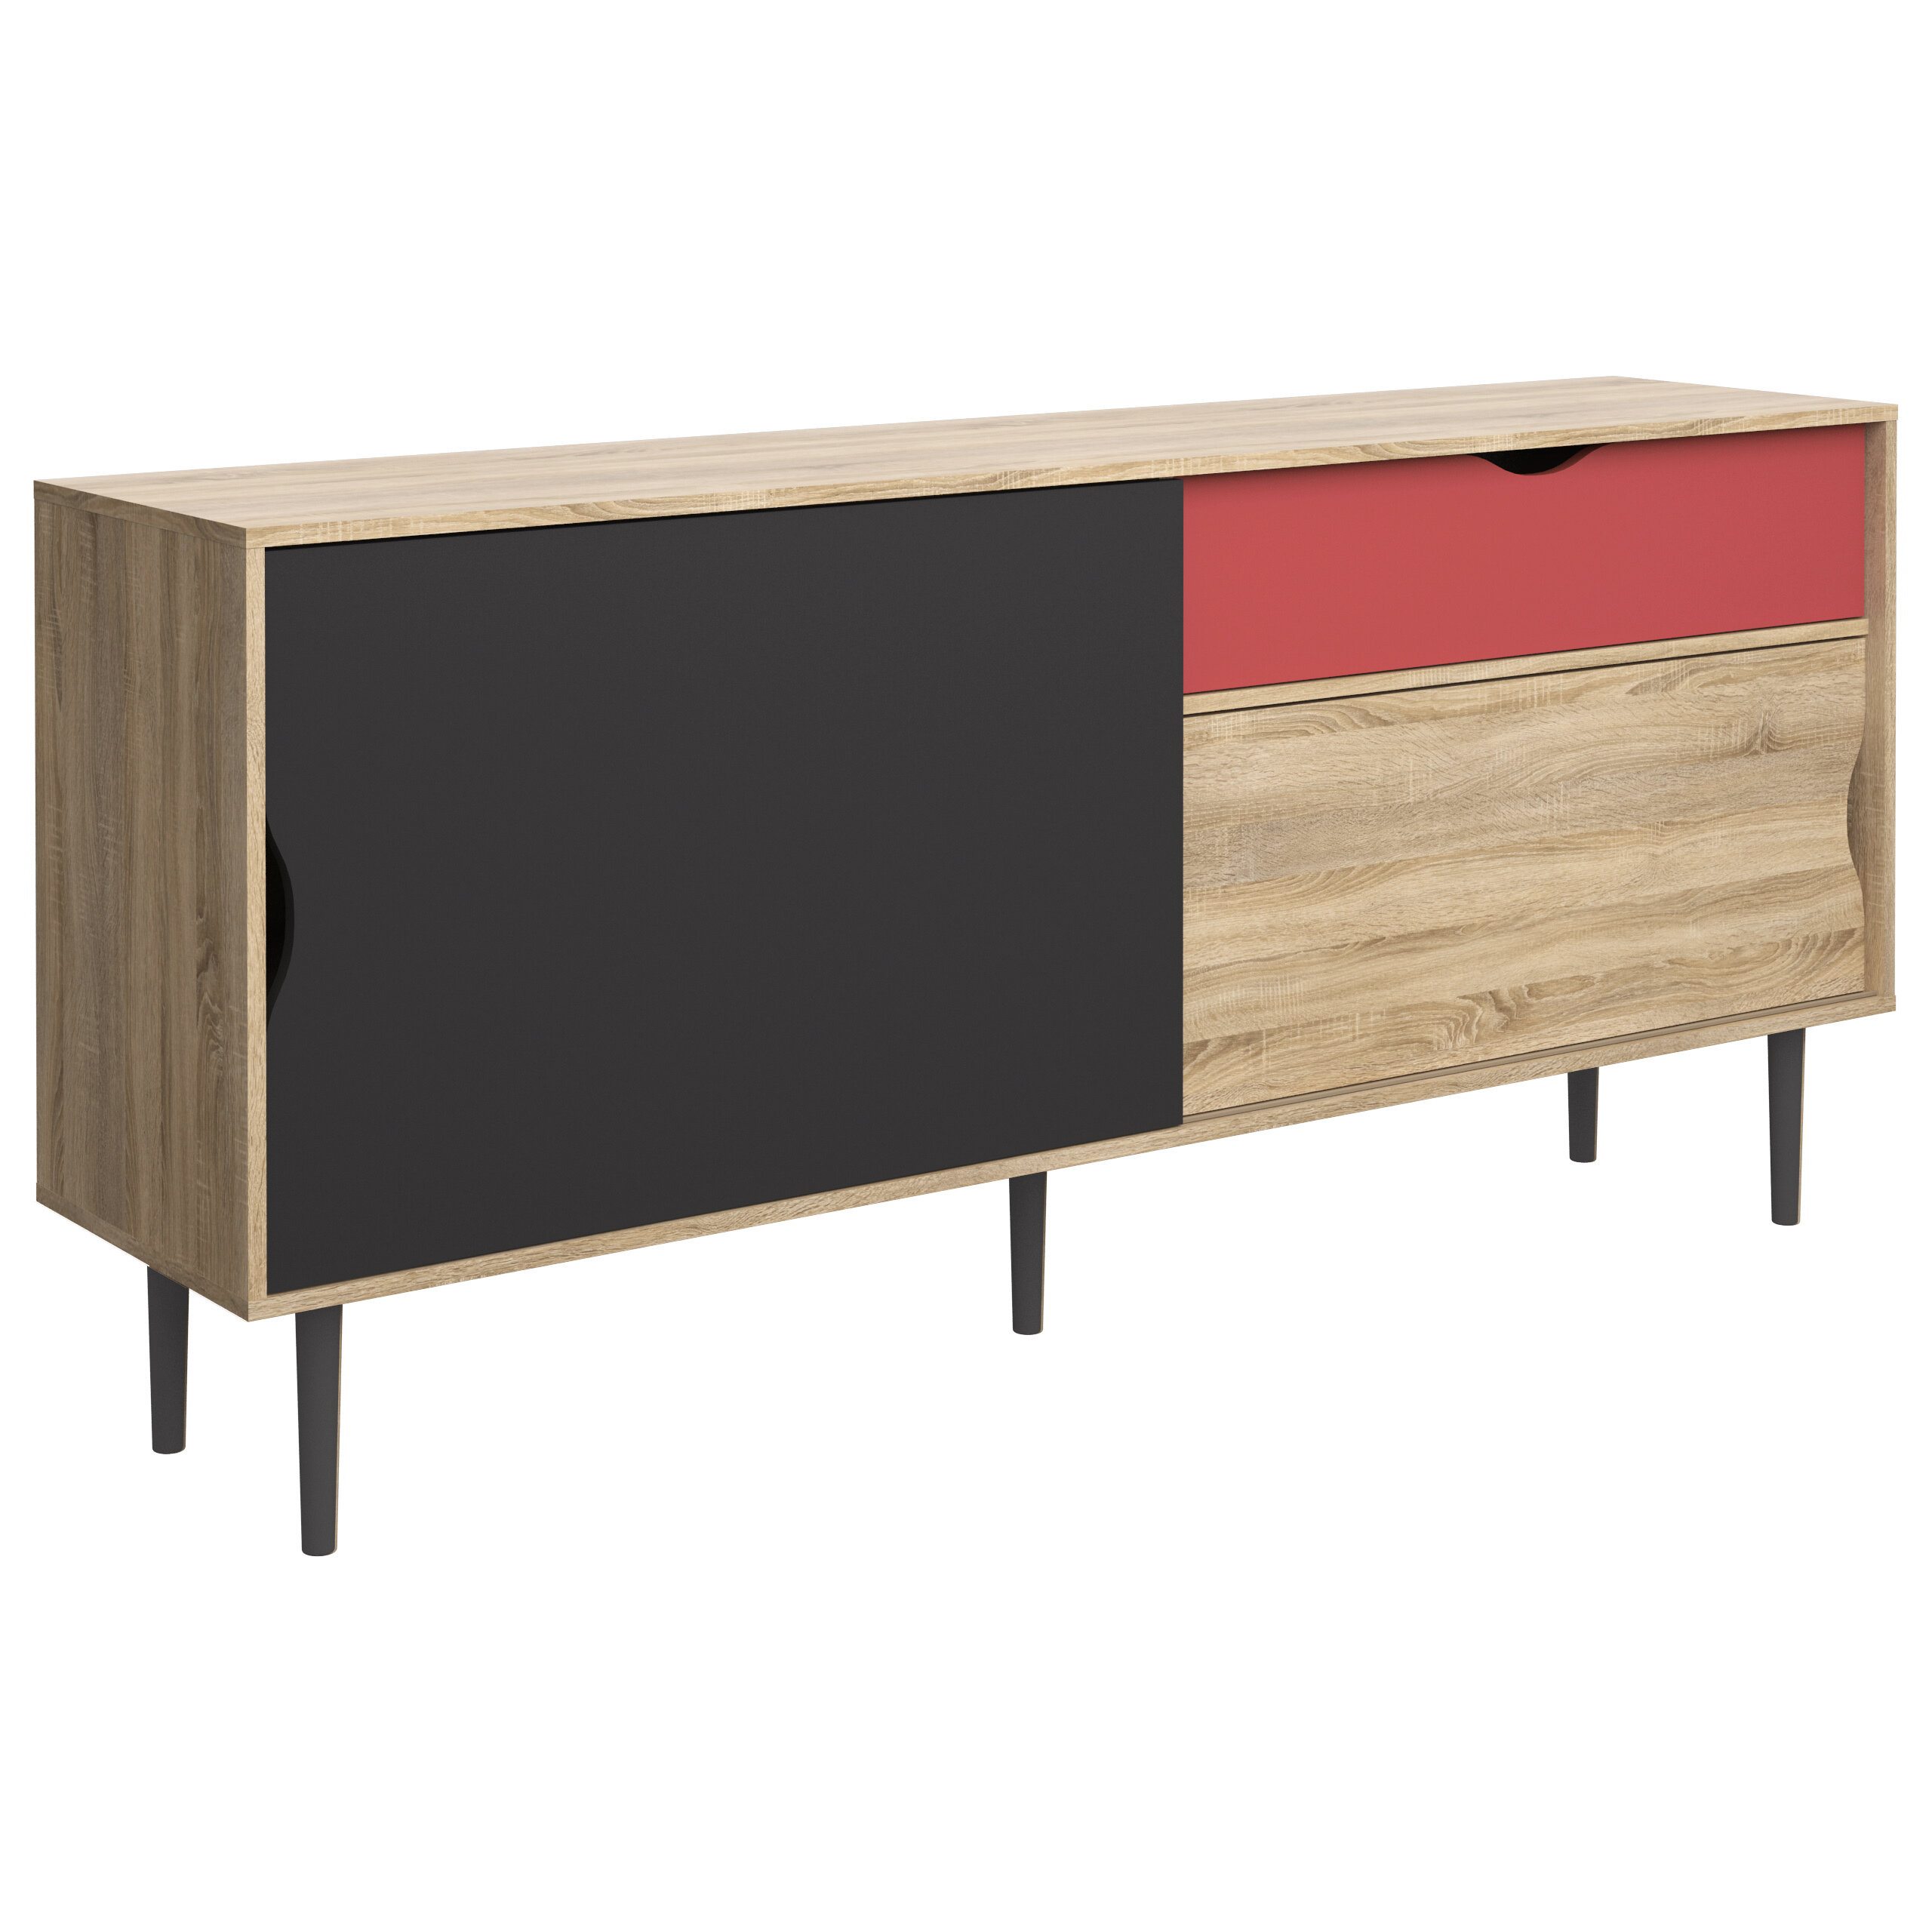 Dovray Sideboard With Regard To Dovray Sideboards (Photo 2 of 30)